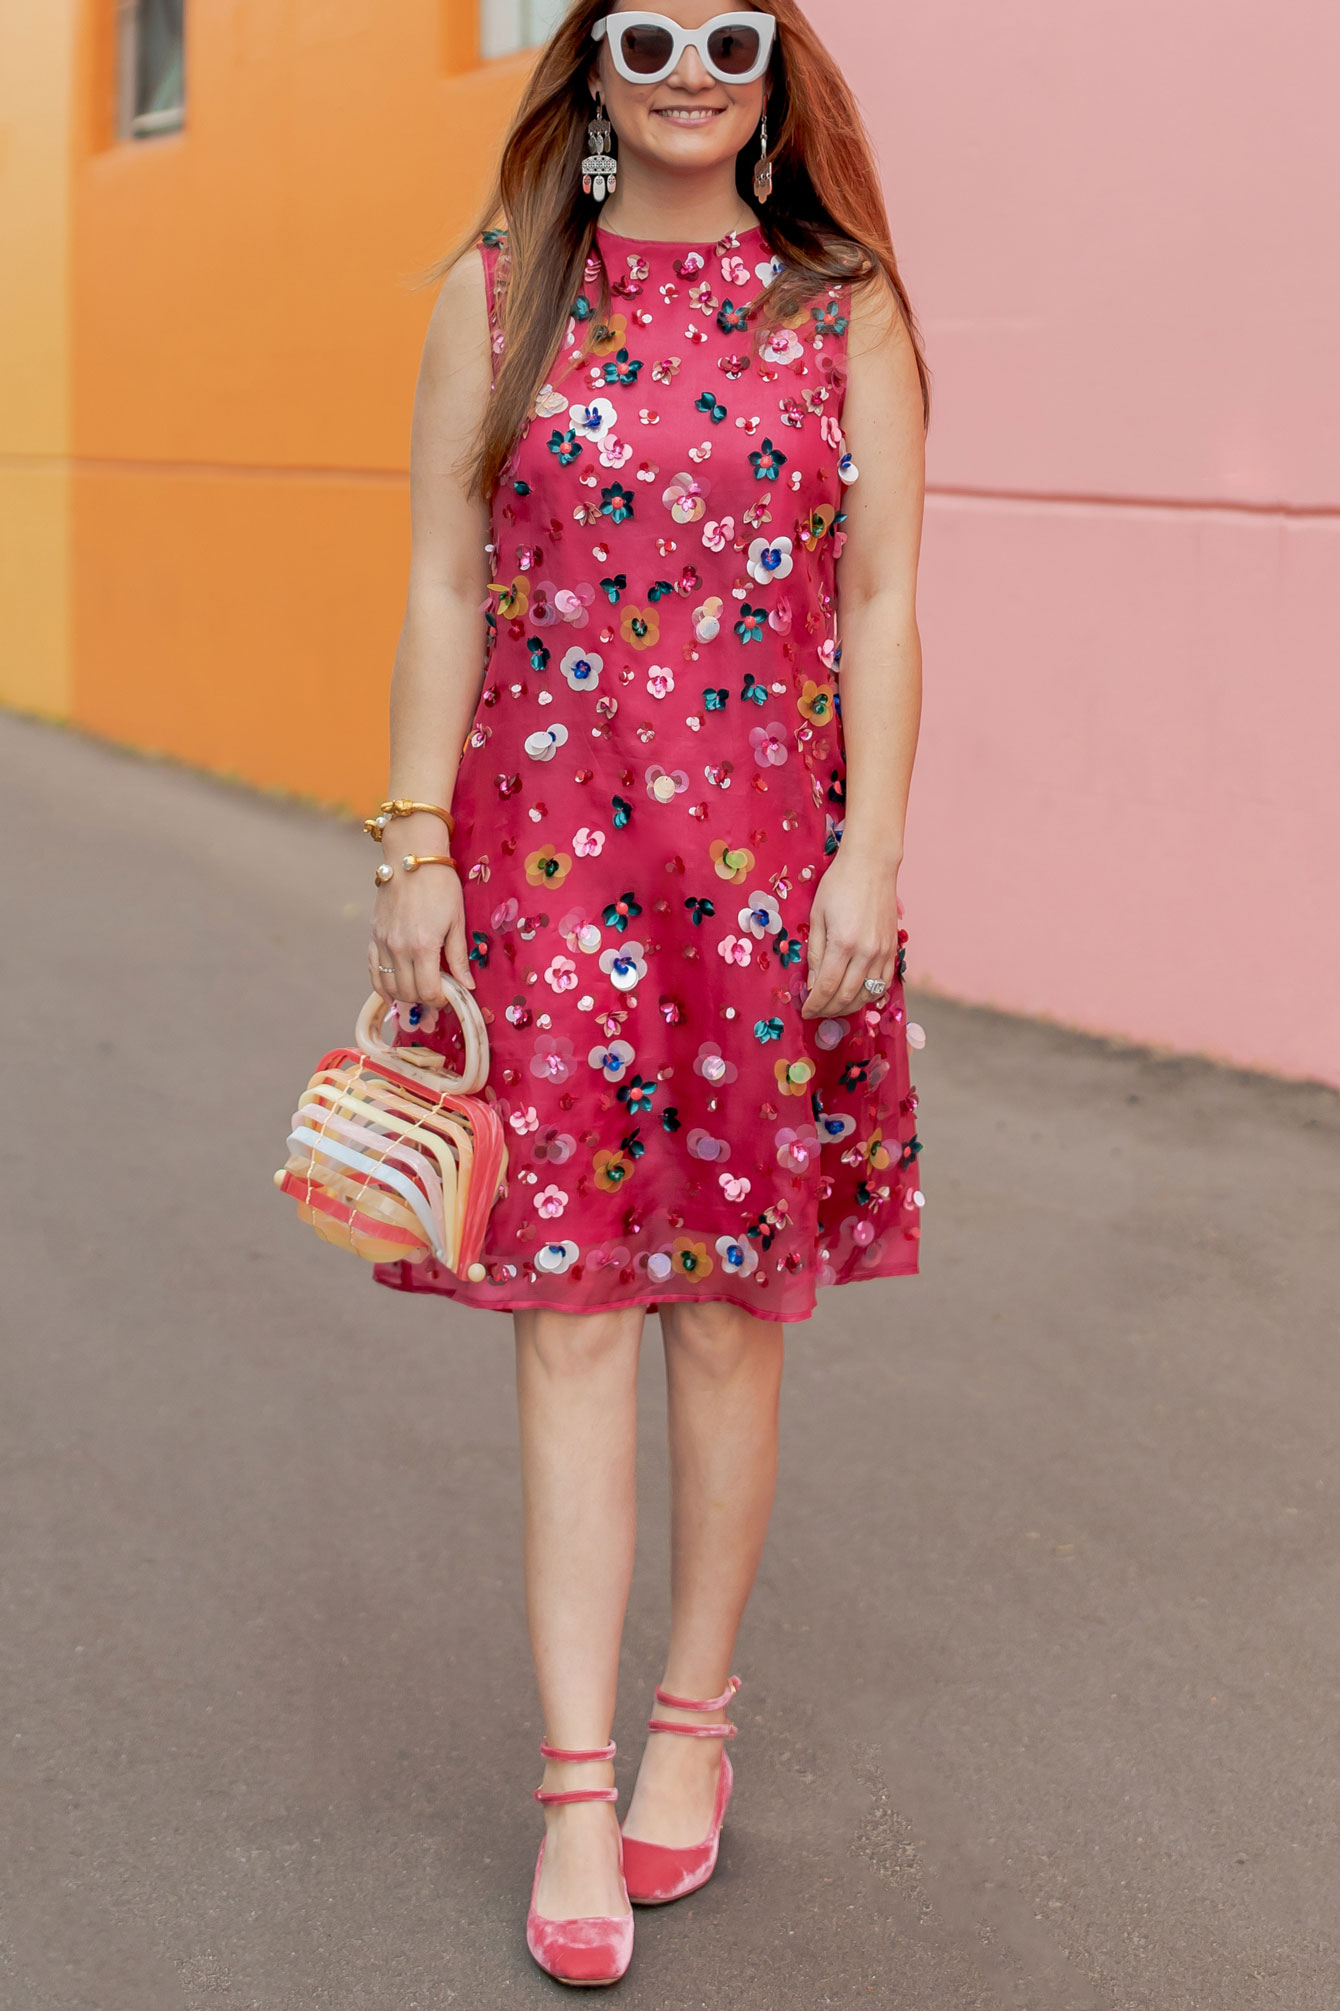 Mansur Gavriel Pink Embellished Dress